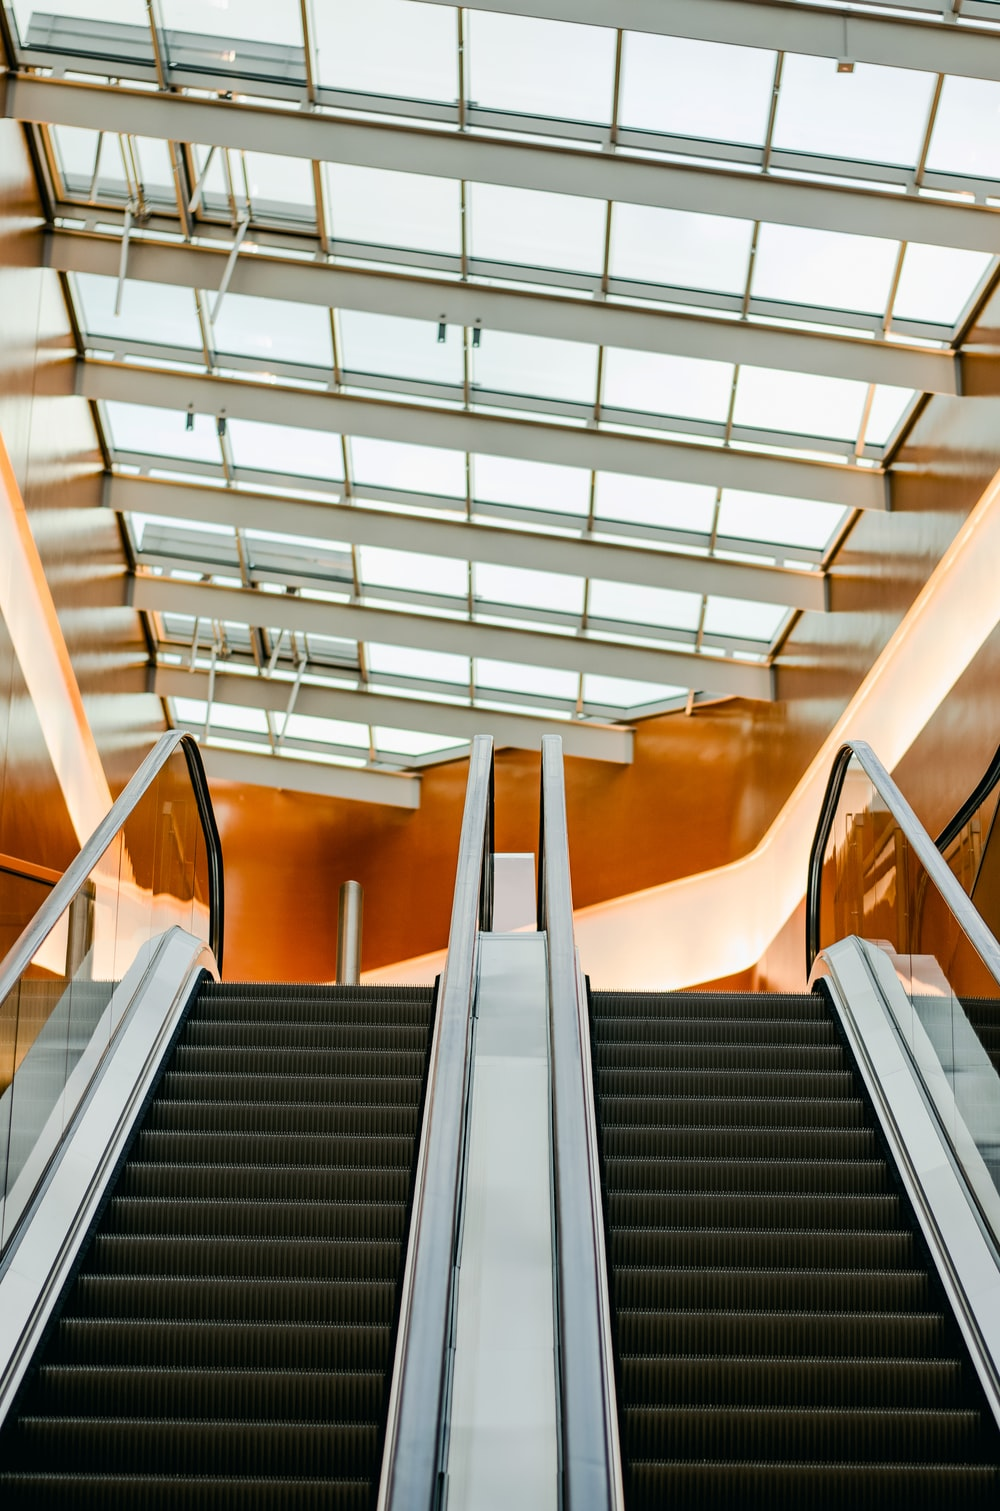 structural photography of escalators